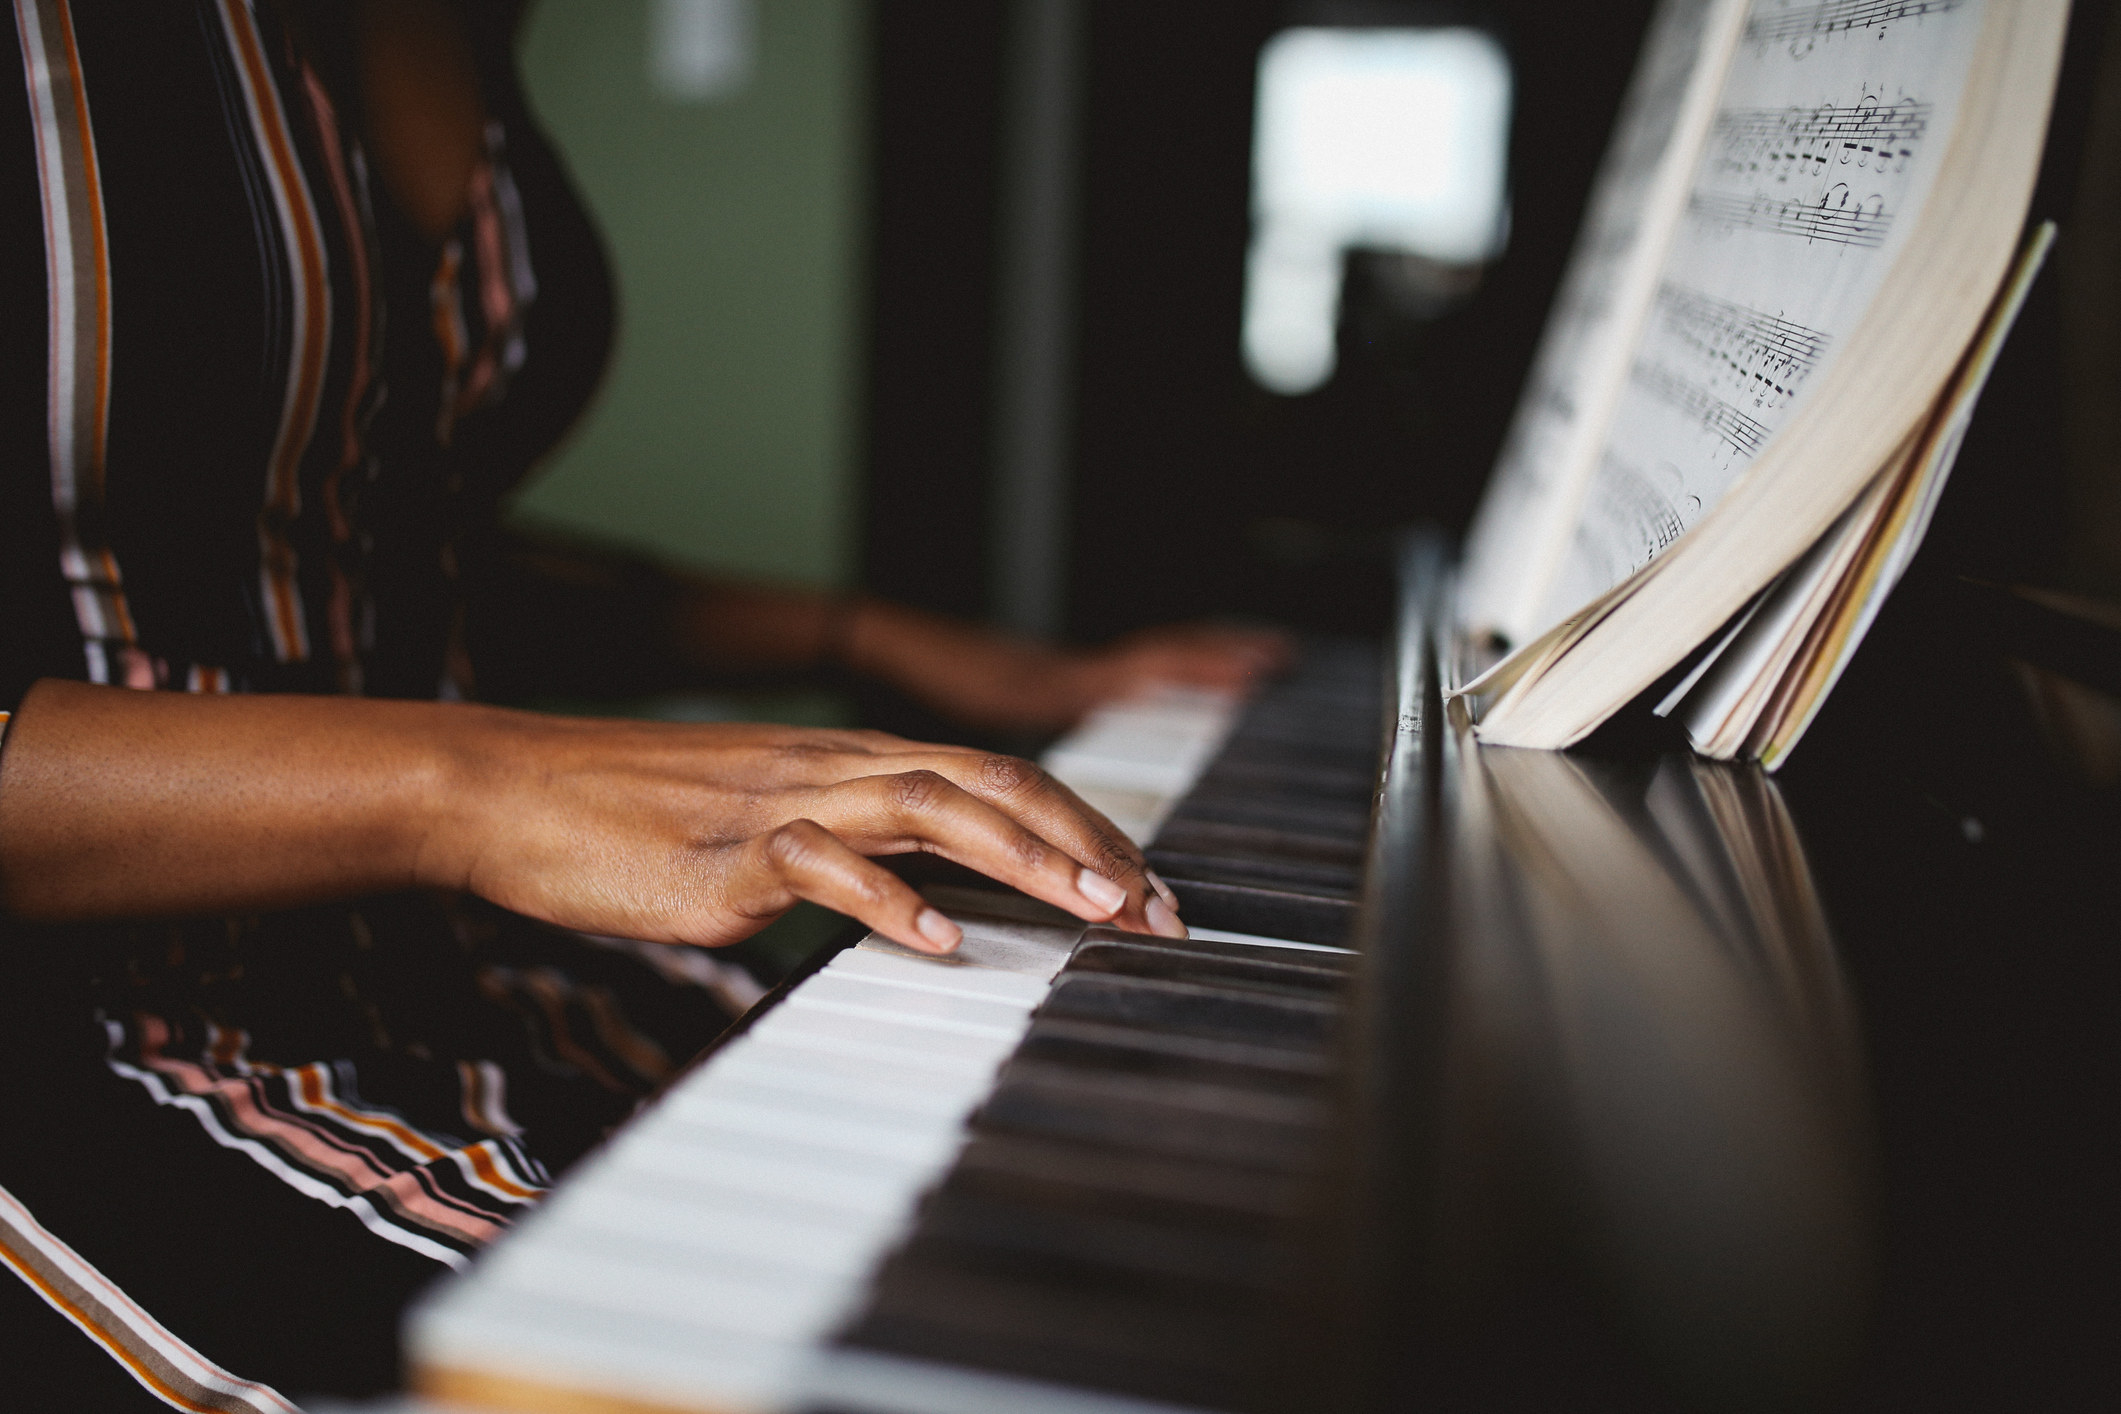 An up-close shot of someone's hands playing piano